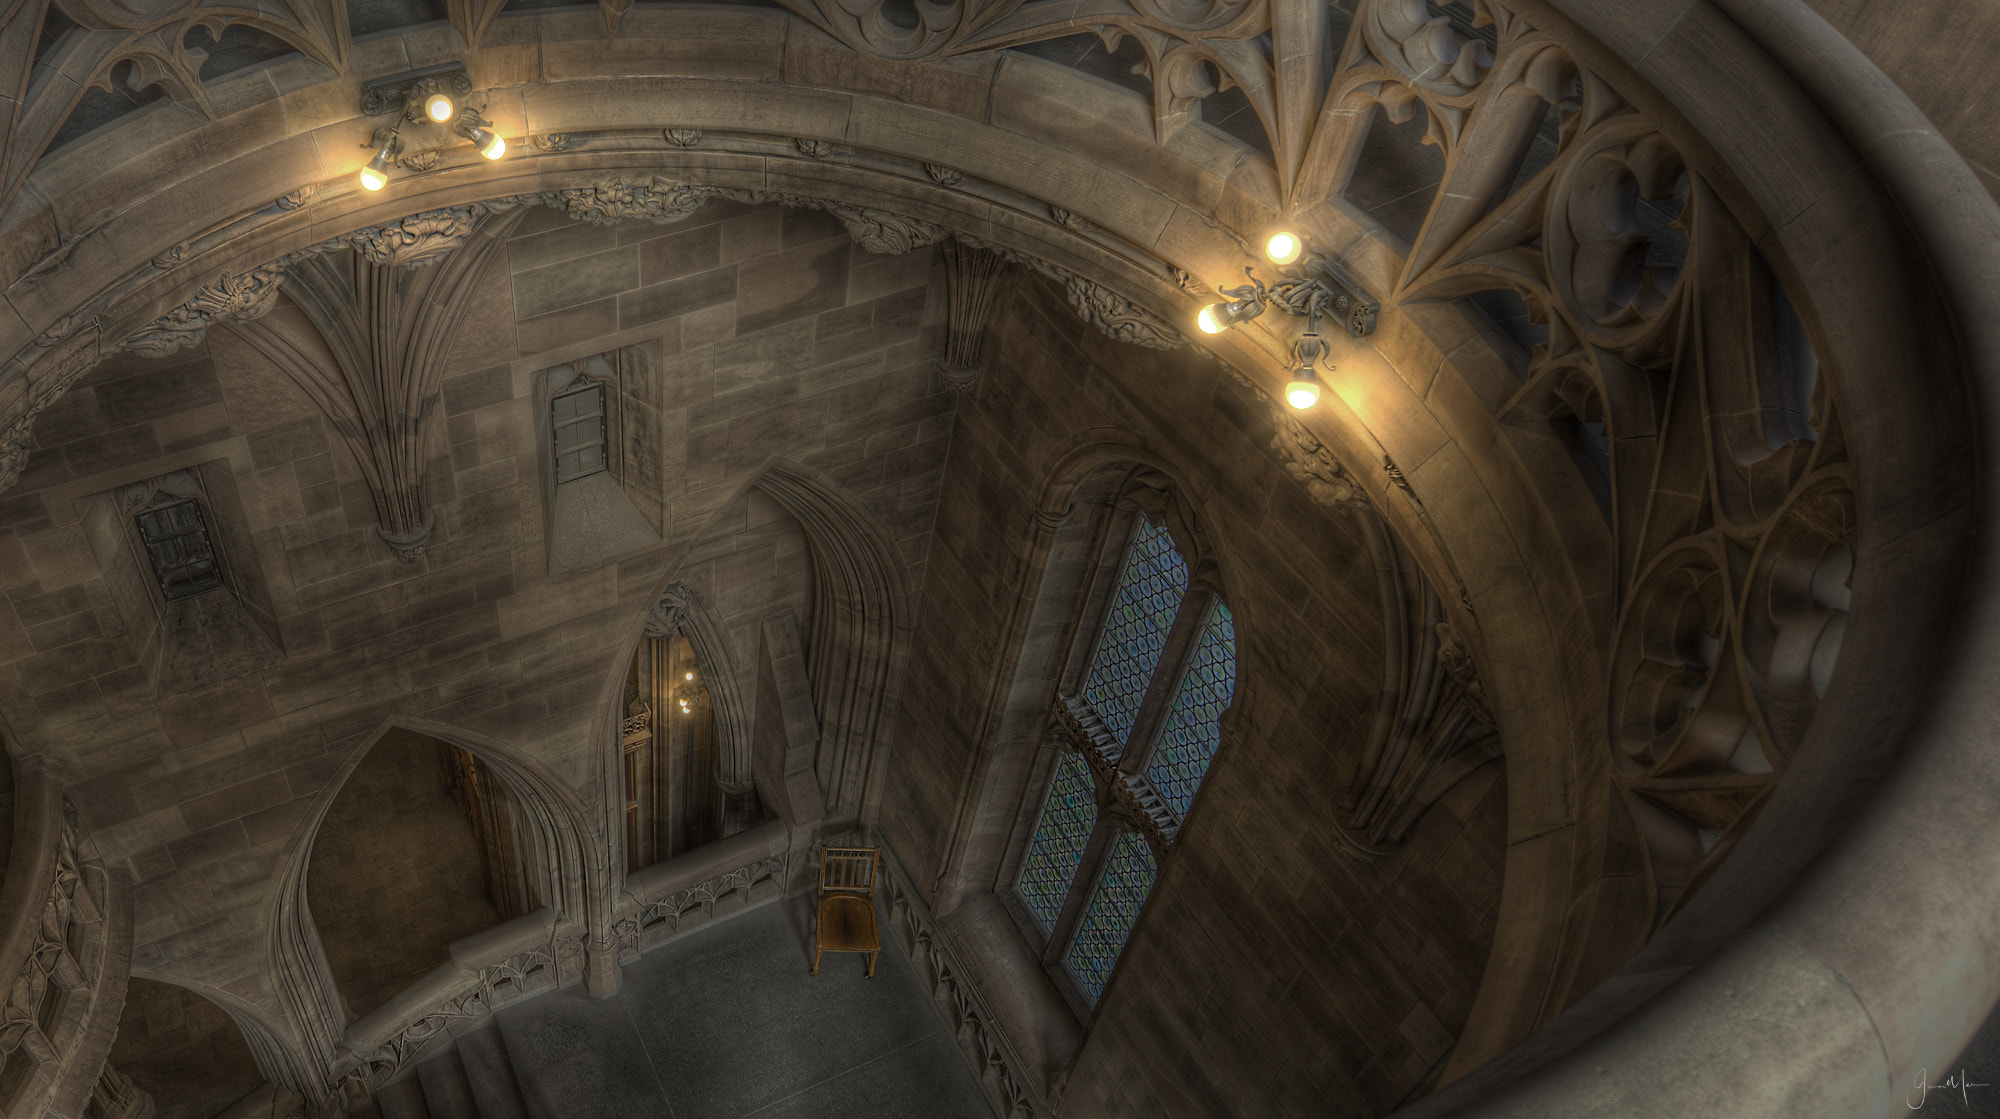 Photograph John Rylands LIbrary Ceiling From Above by Jason Merrin on 500px